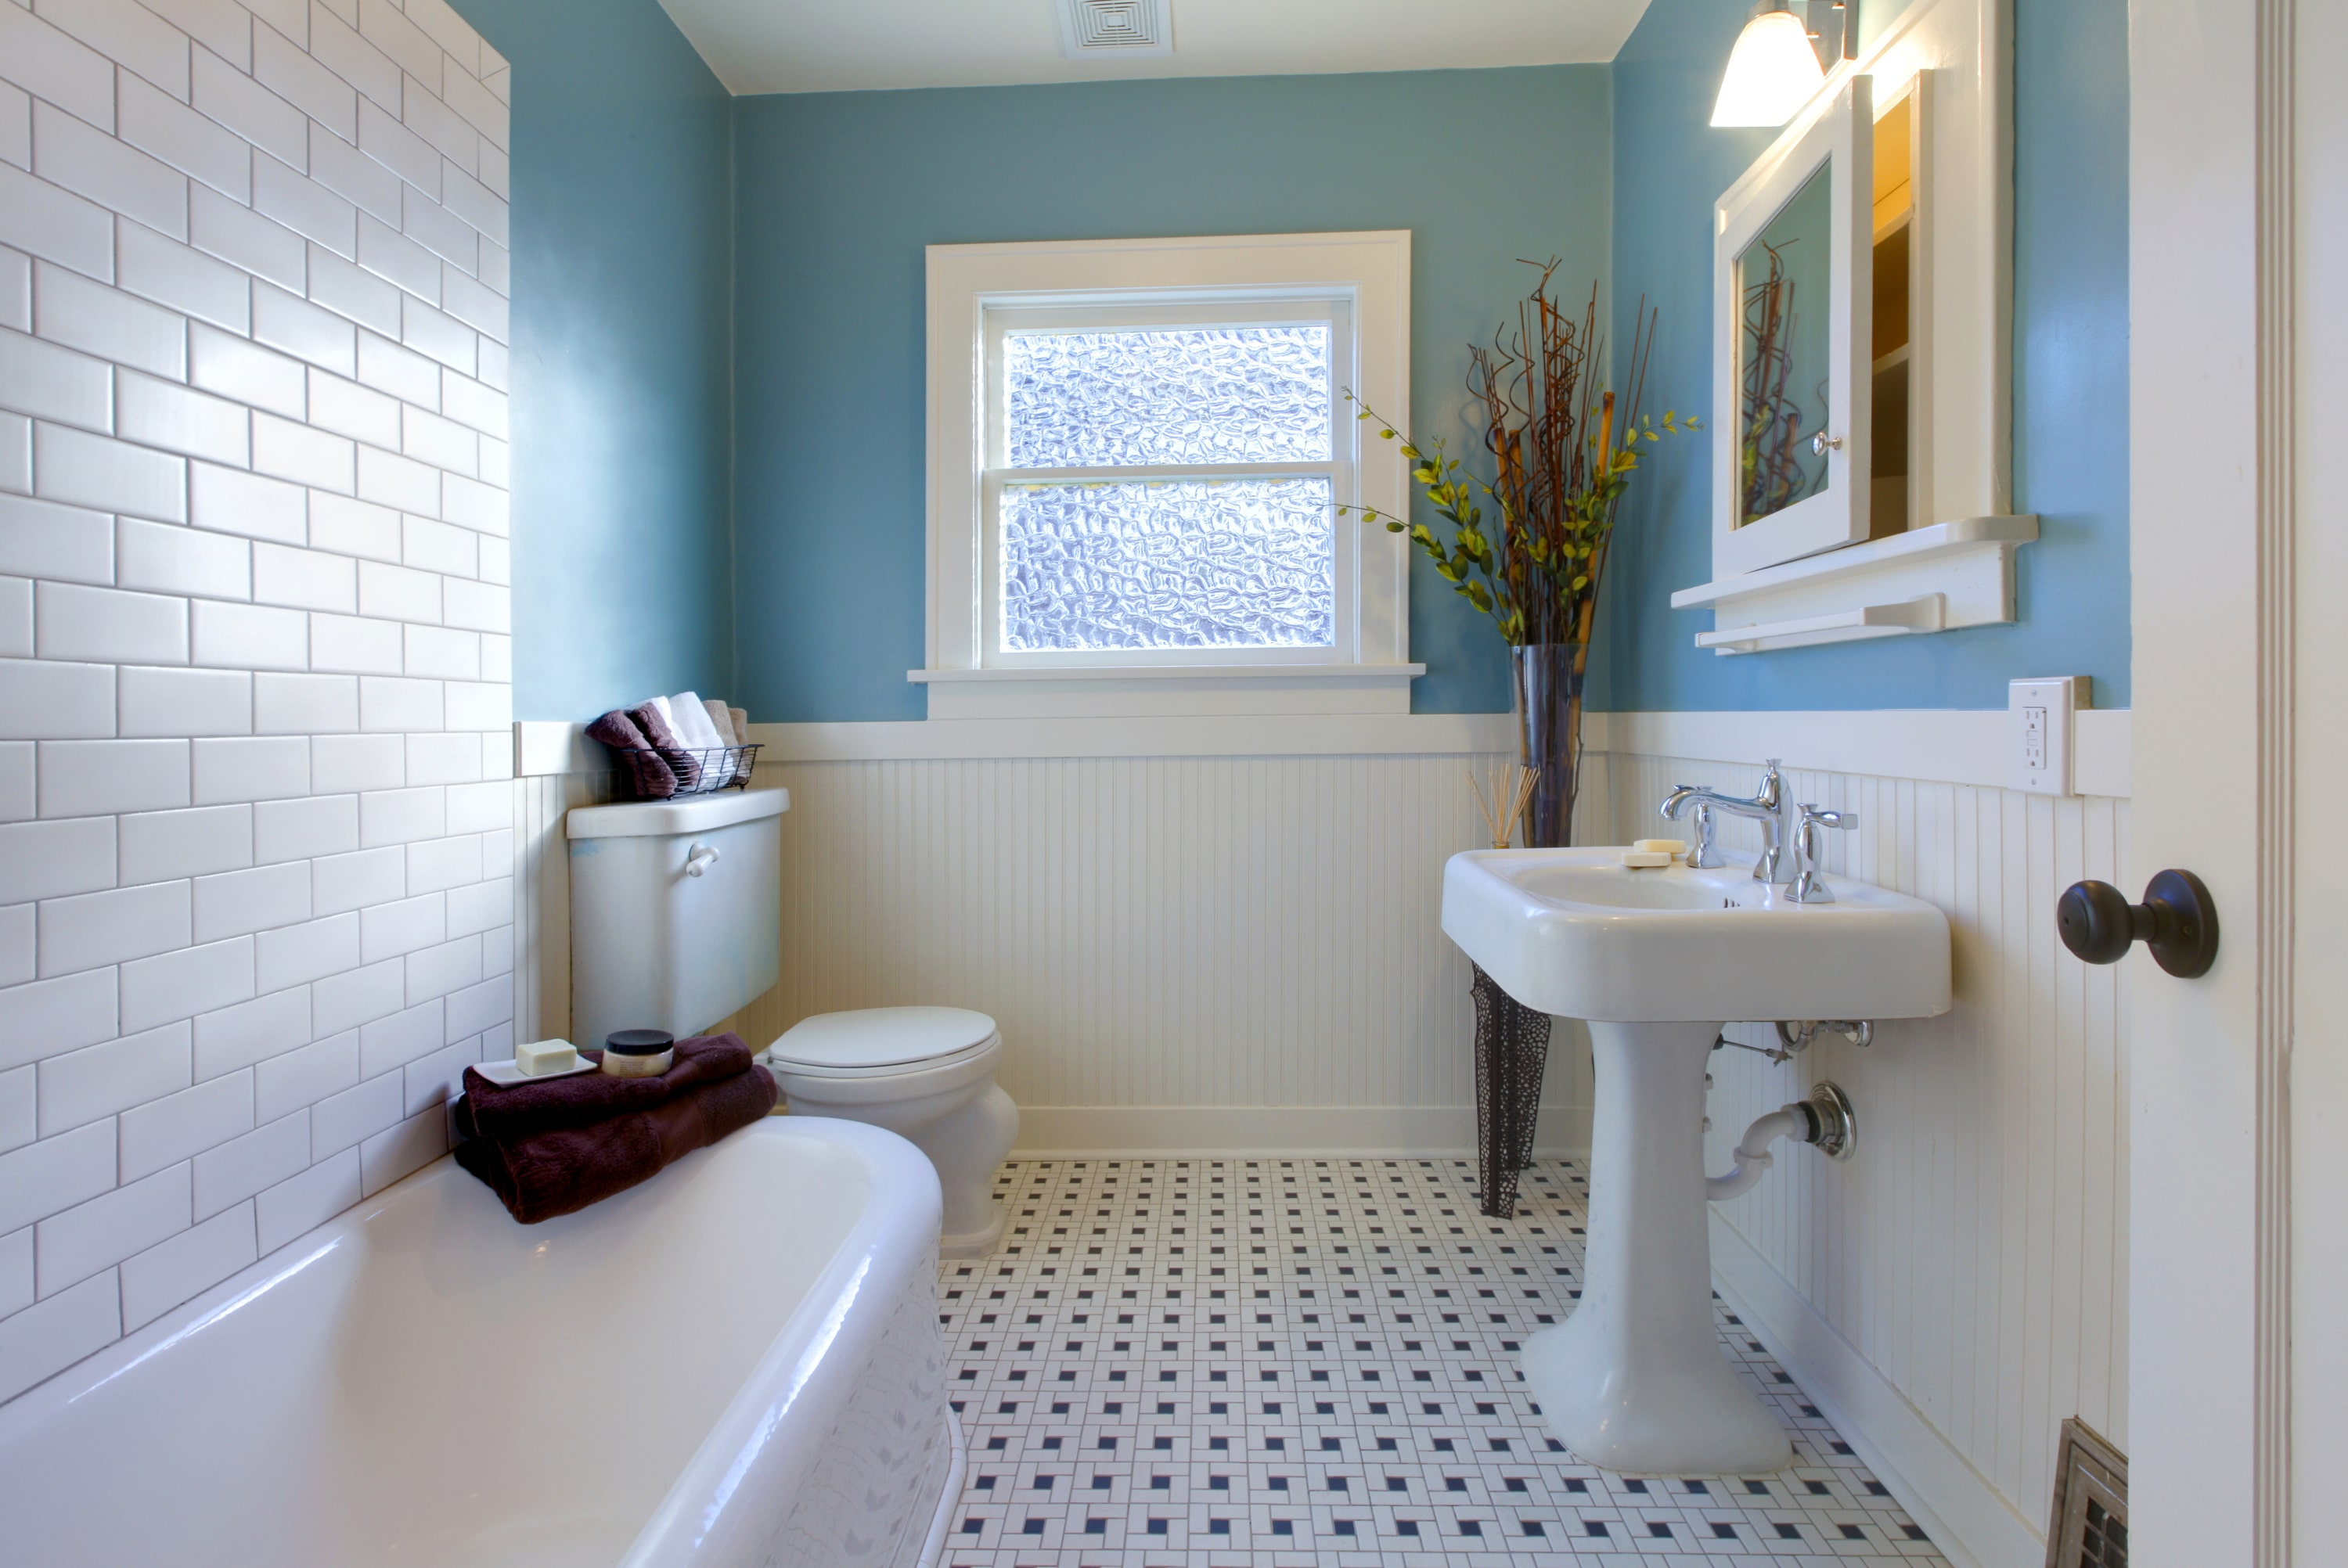 & 8 Bathroom Design \u0026 Remodeling Ideas on a Budget